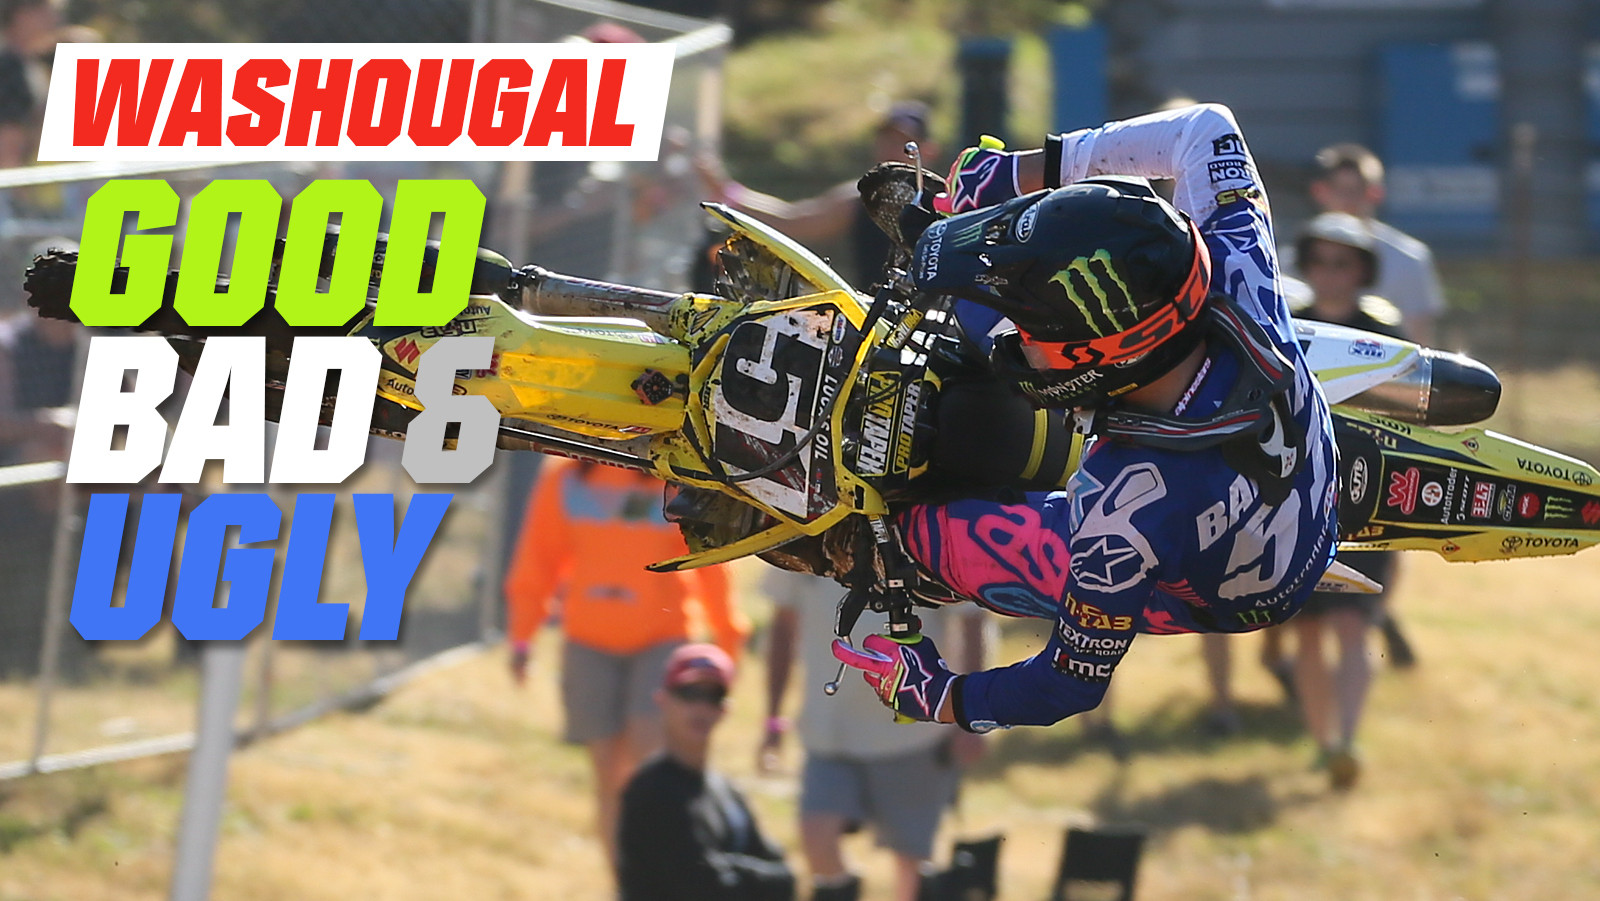 Washougal - The Good, the Bad, and the Ugly